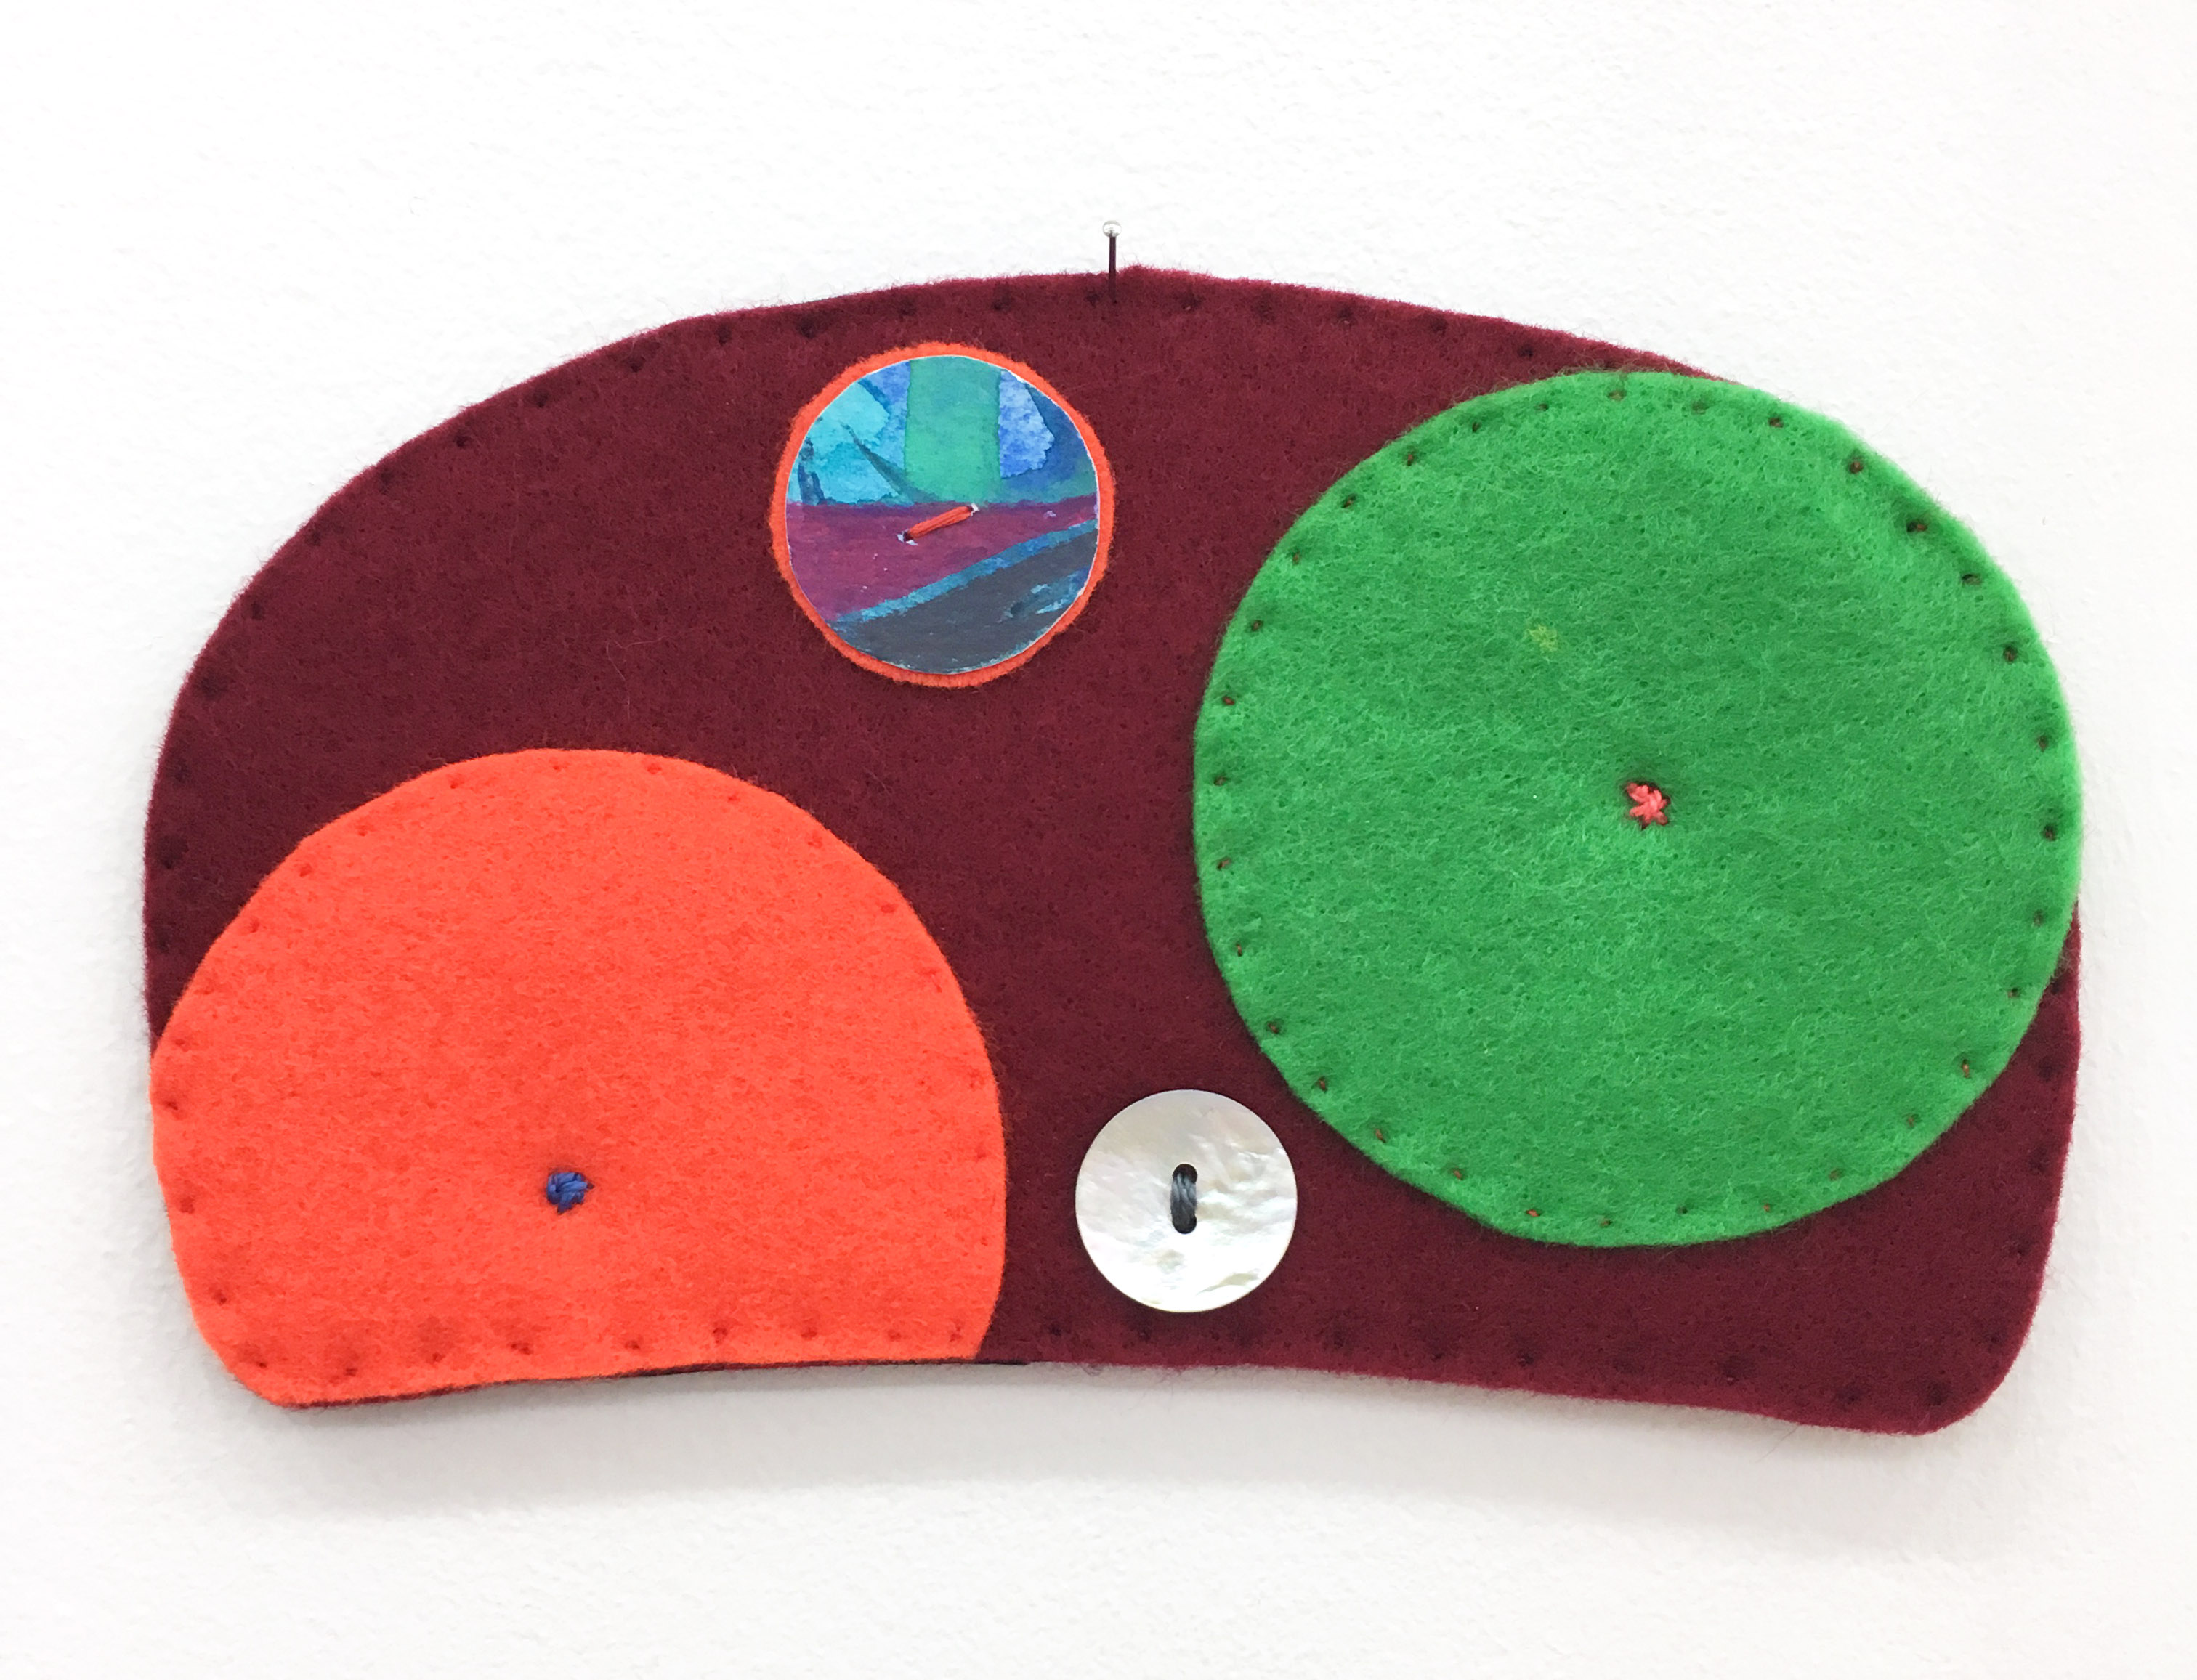 "Ovoid Felts, Charlene Vickers (Anishnabe), Watercolour, paper, shell buttons, glass beads on felt with embroidery edges, 7"" x 4"", $600"